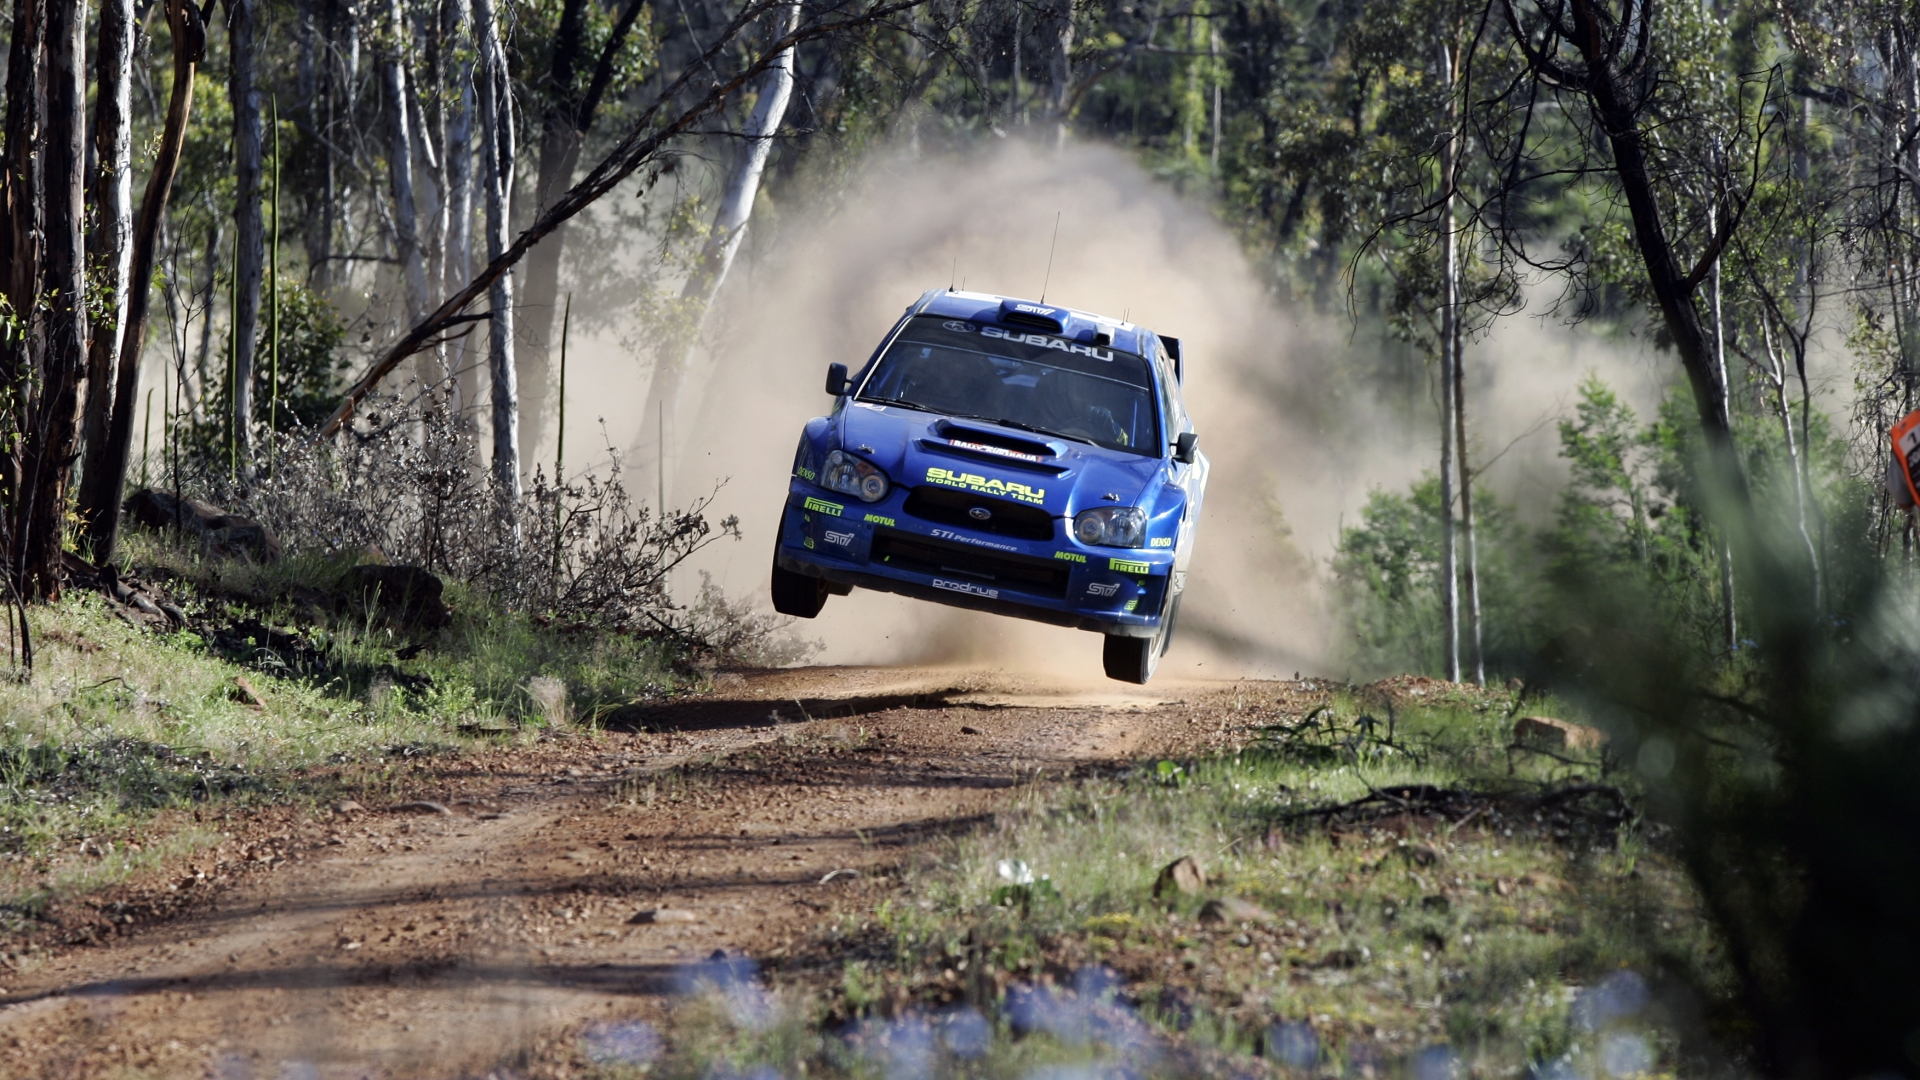 Sweet Wallpaper With Quotes Daily Wallpaper Wrc Subaru Catching Air I Like To Waste